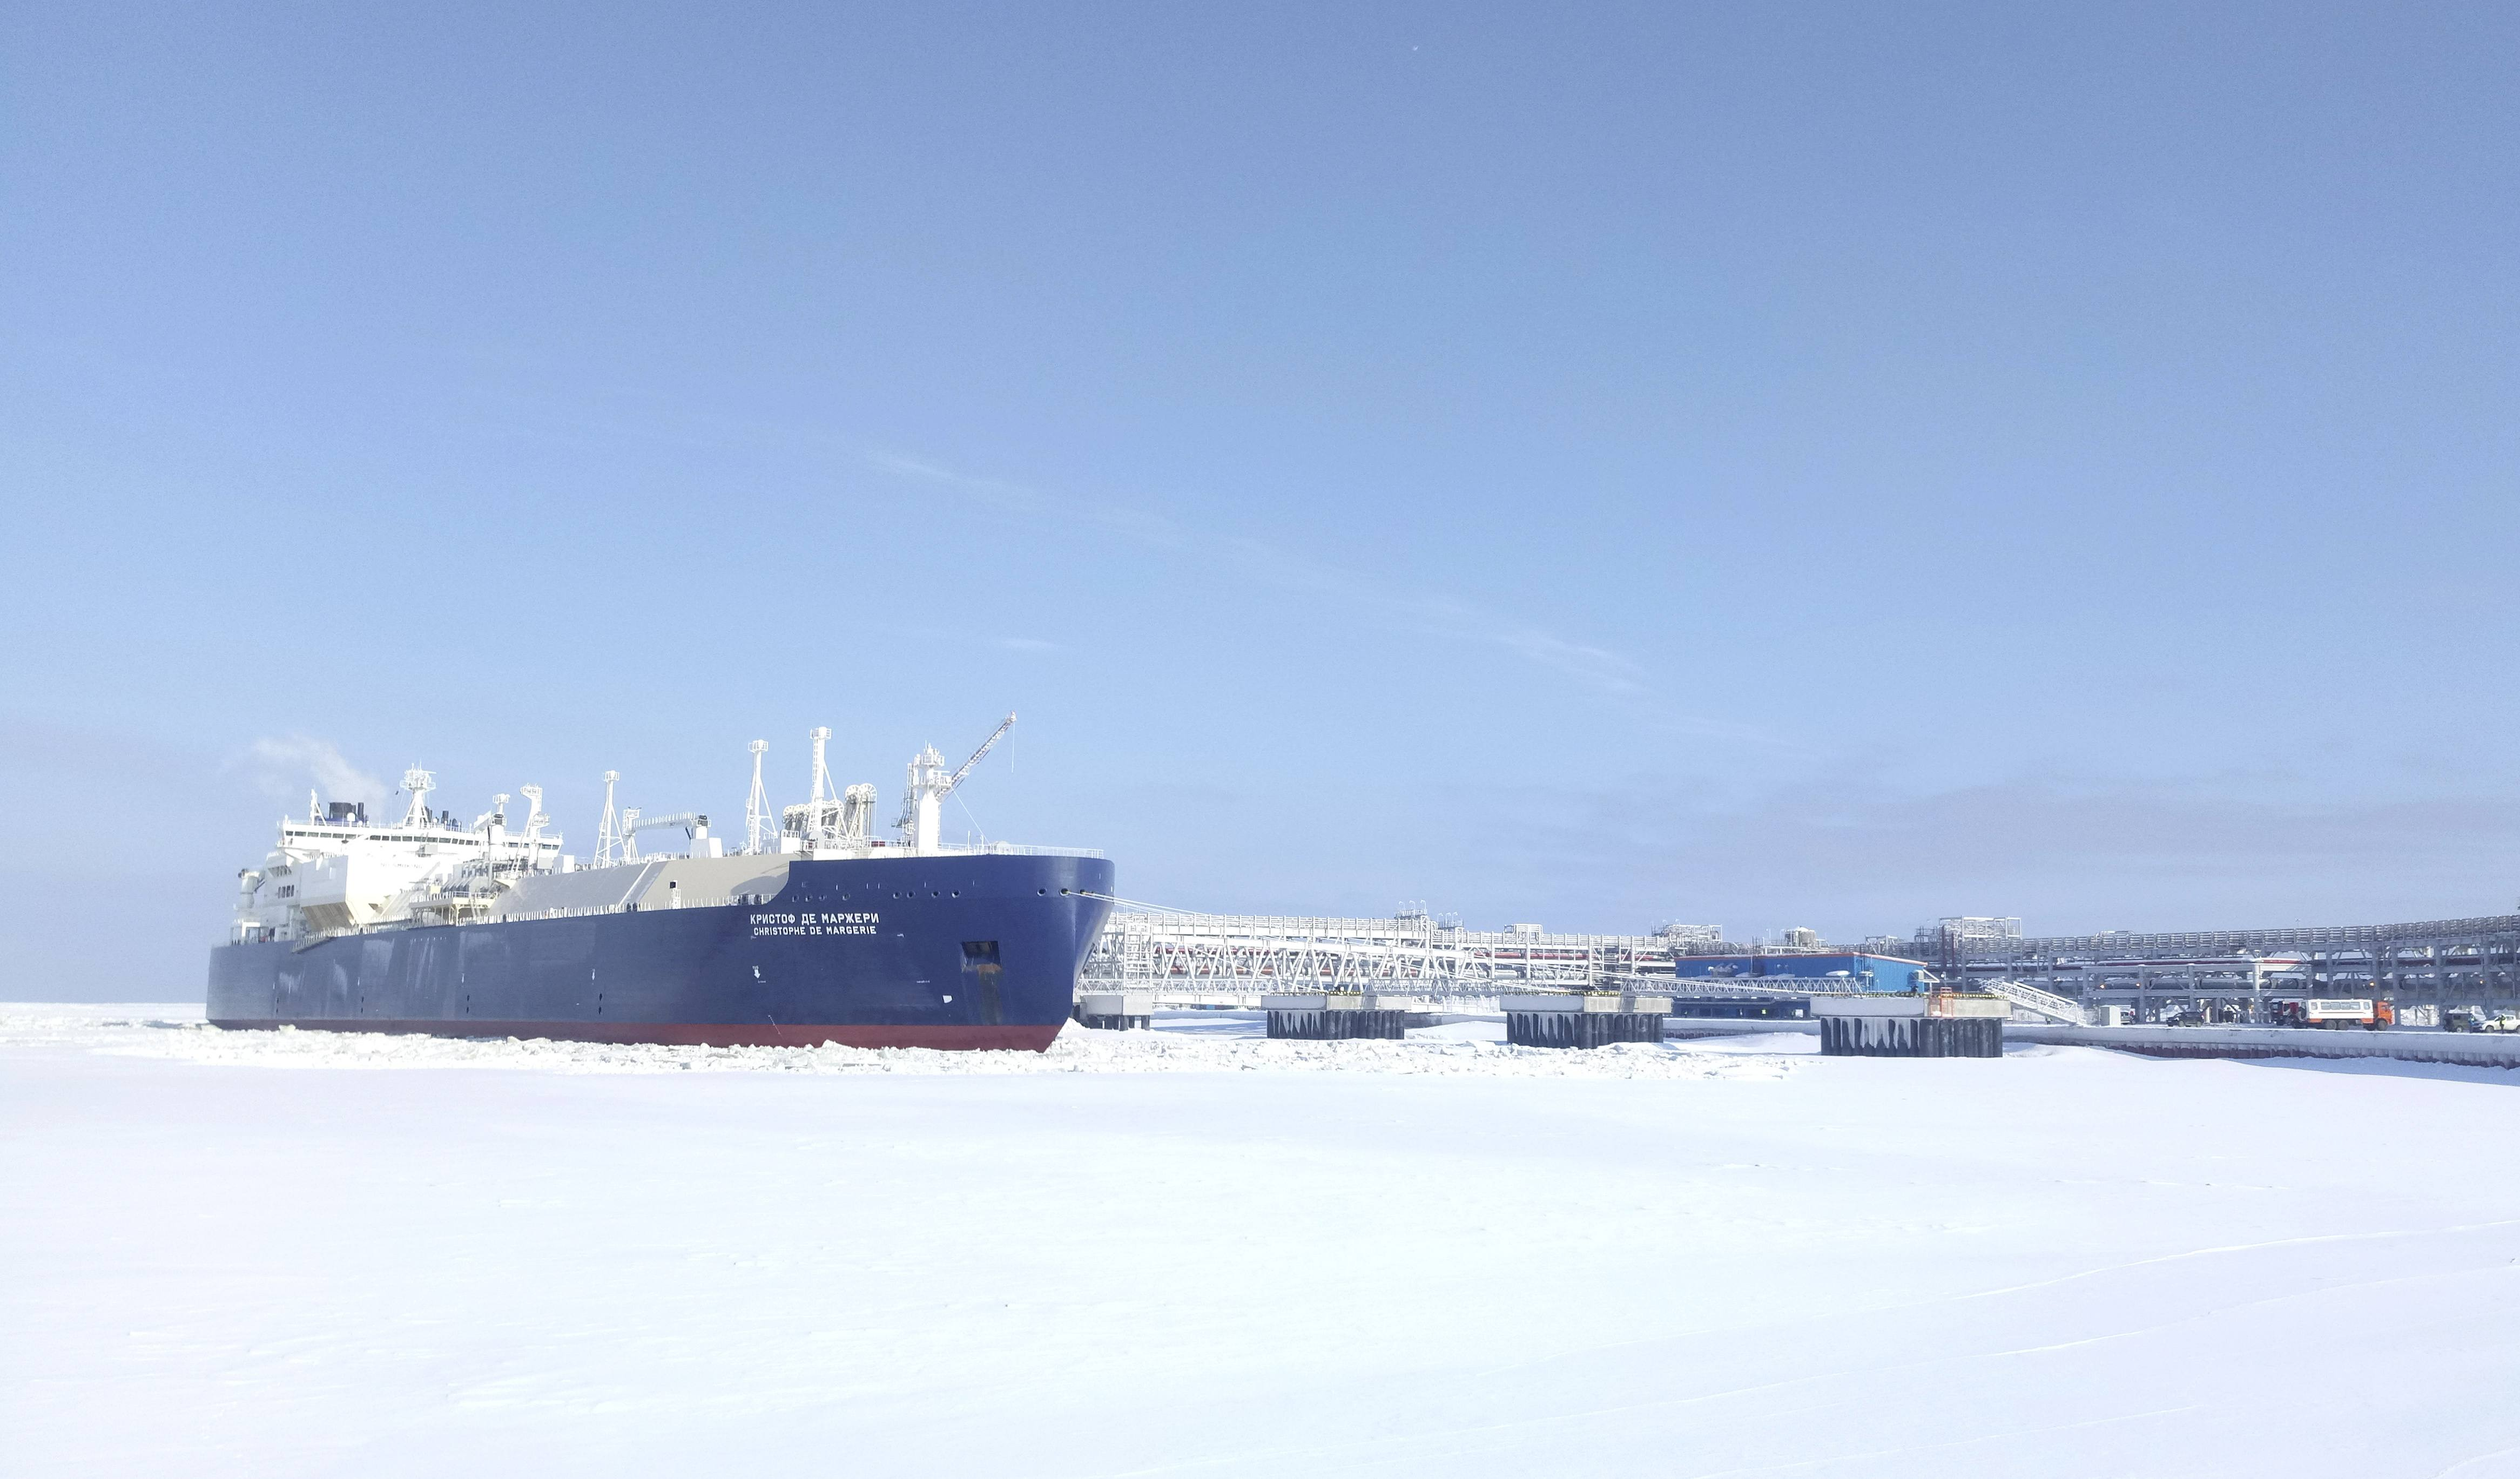 The Christophe de Margerie, an ice-class tanker fitted out to transport liquefied natural gas, is docked in Arctic port of Sabetta, Yamalo-Nenets district, Russia March 30, 2017. (Olesya Astakhova / Reuters)